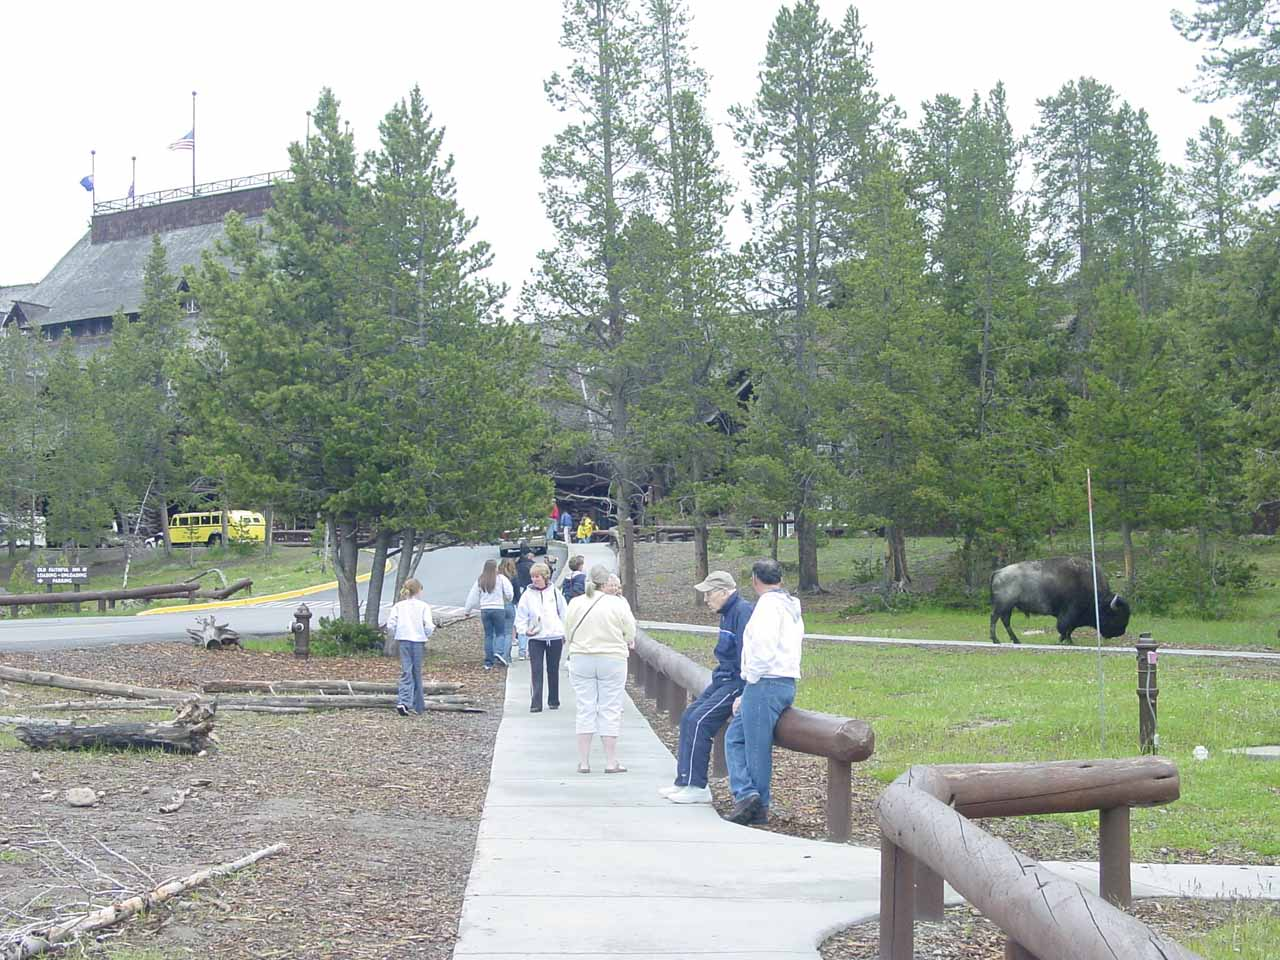 Back at the Old Faithful Inn with bison grazing around the premises